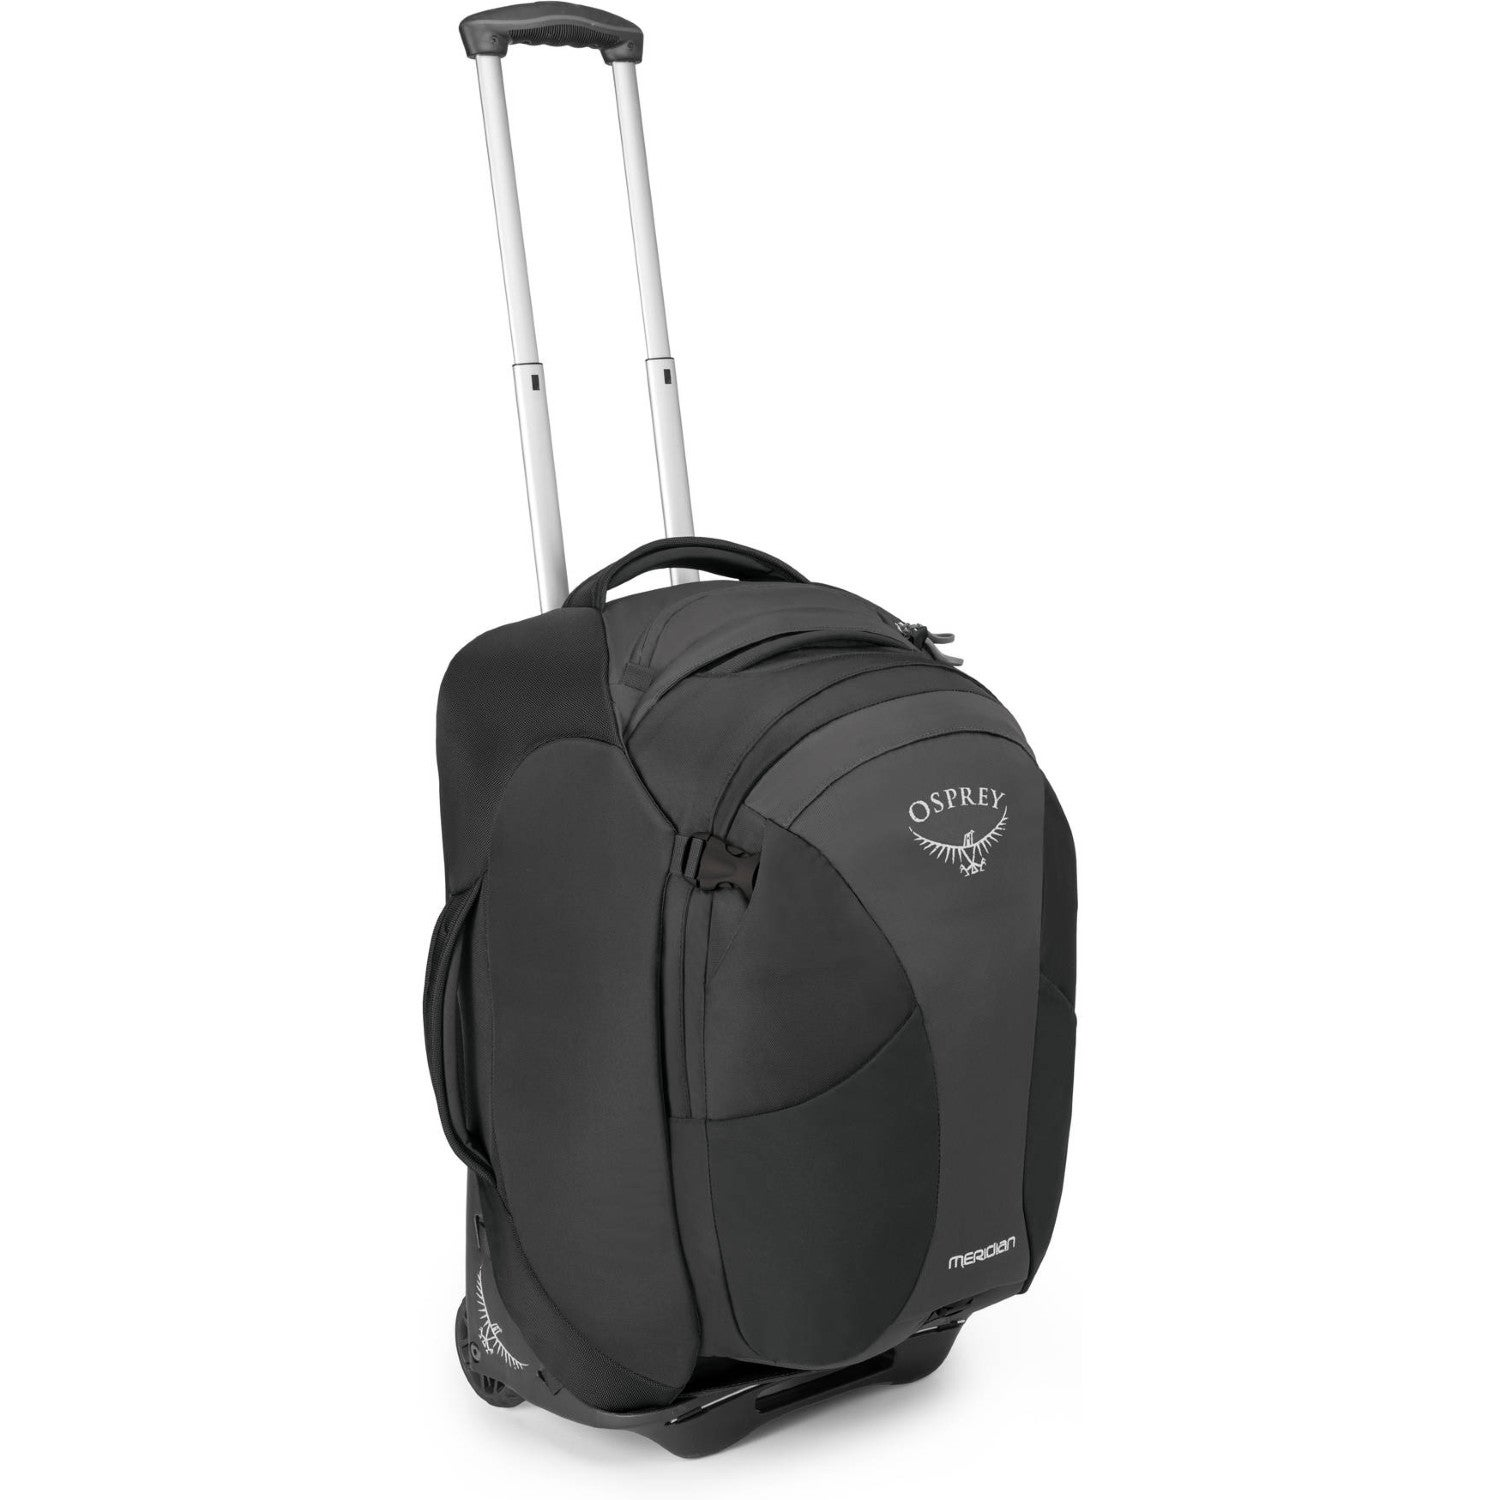 Osprey Meridian 60 Check-in Bagage - Metal Grey